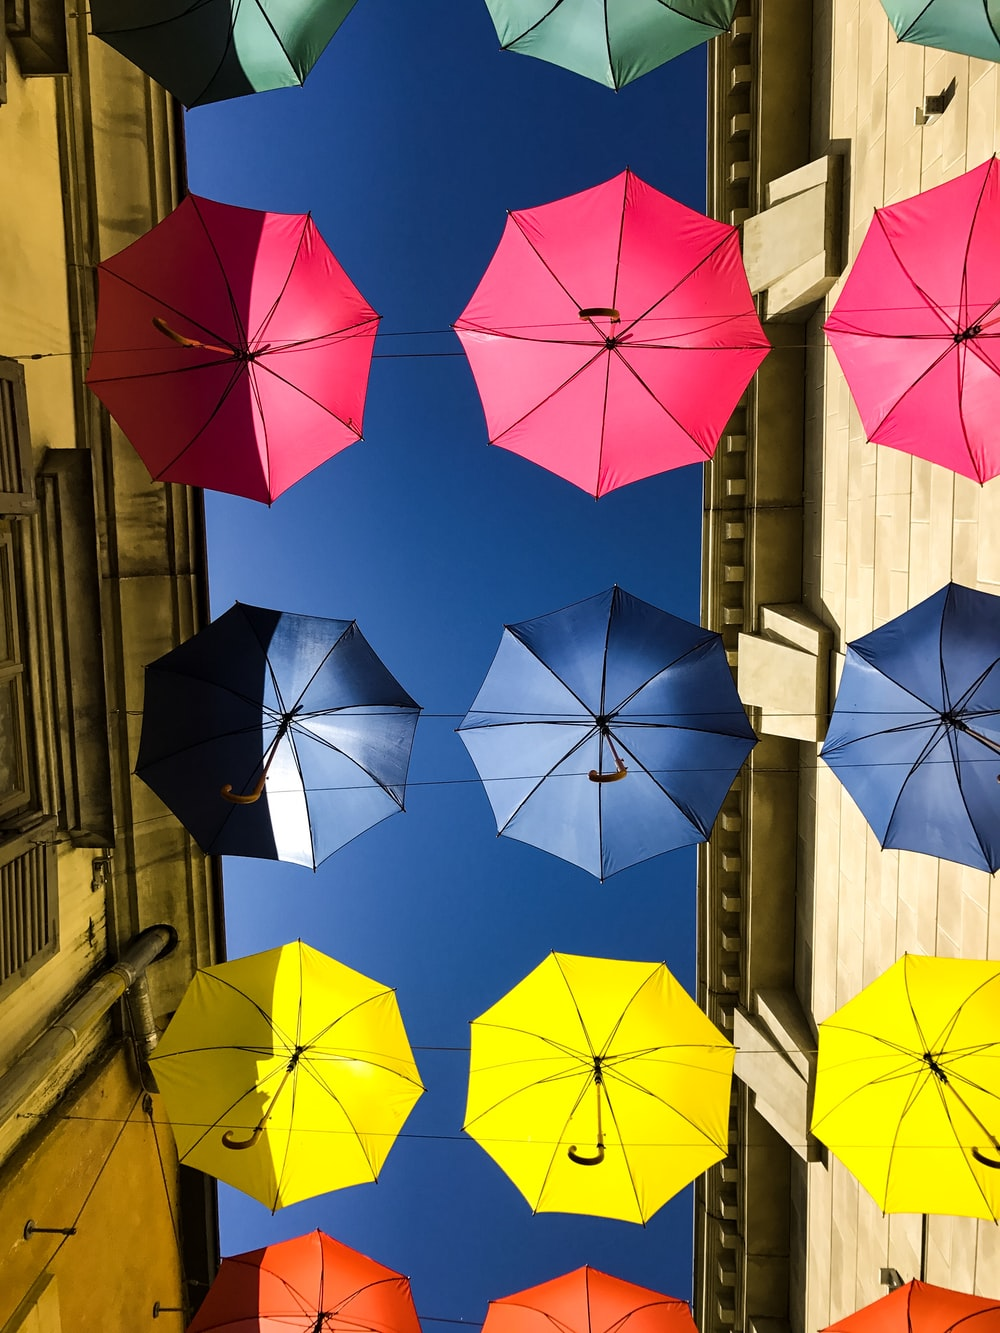 green, pink, blue, yellow, and orange umbrellas hanging in between buildings